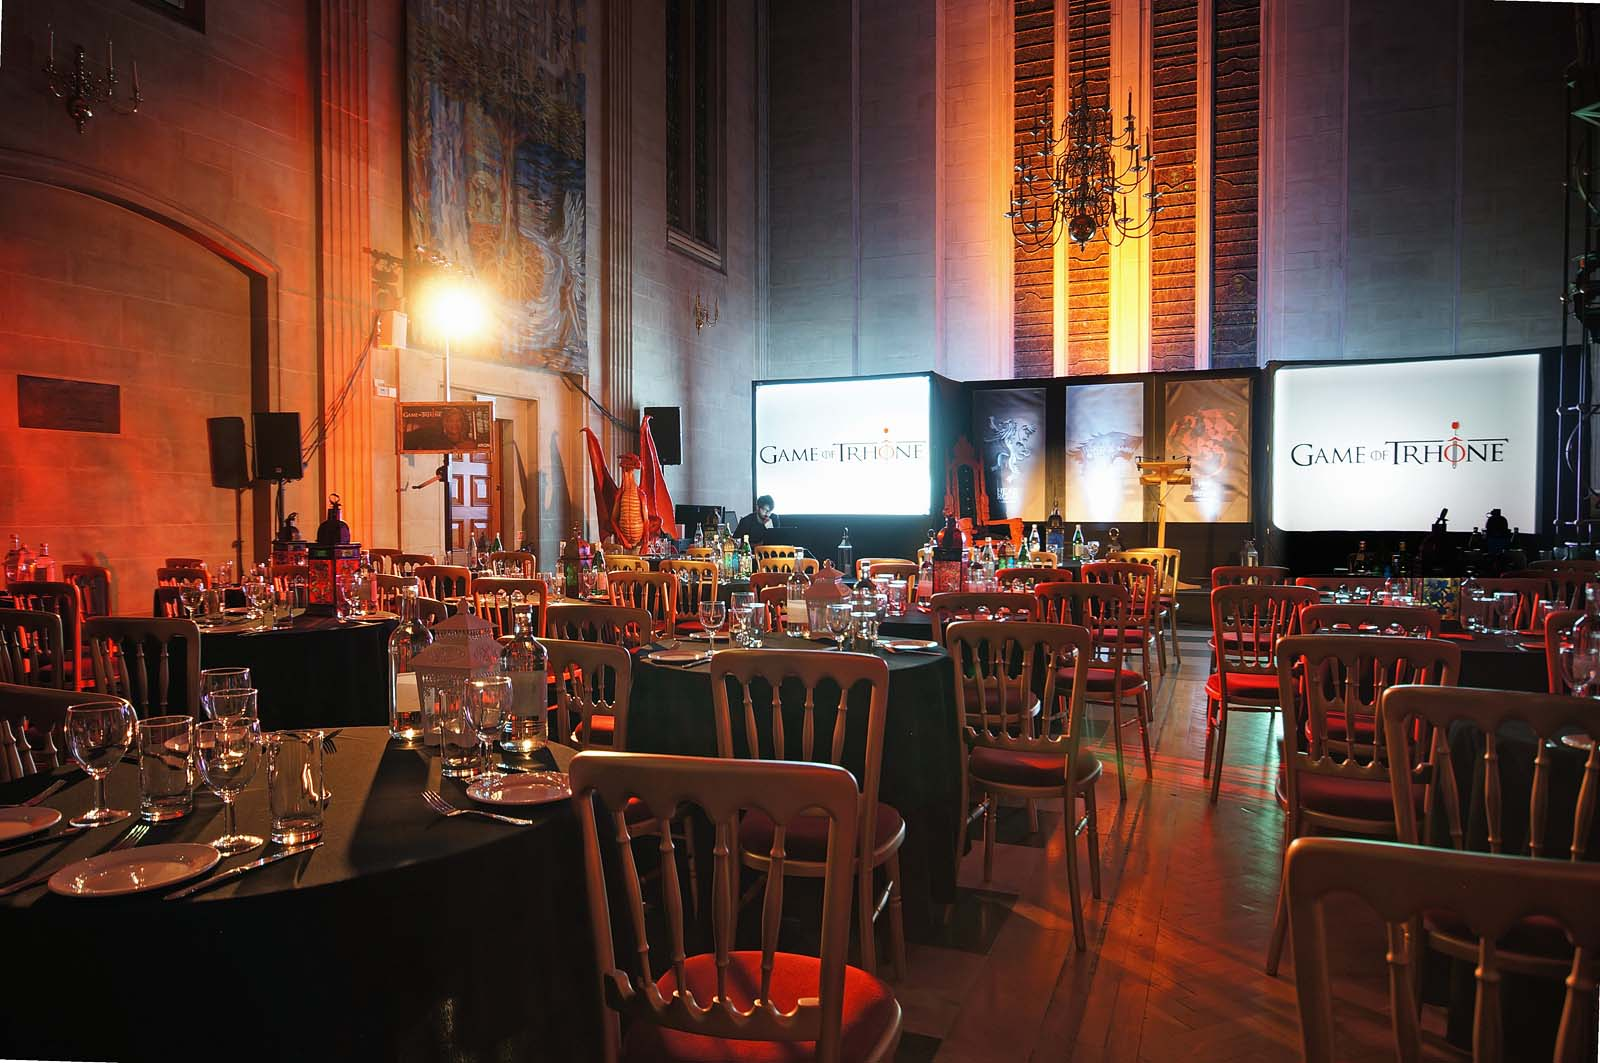 See The Great Hall at City of London event venue The Dutch Hall